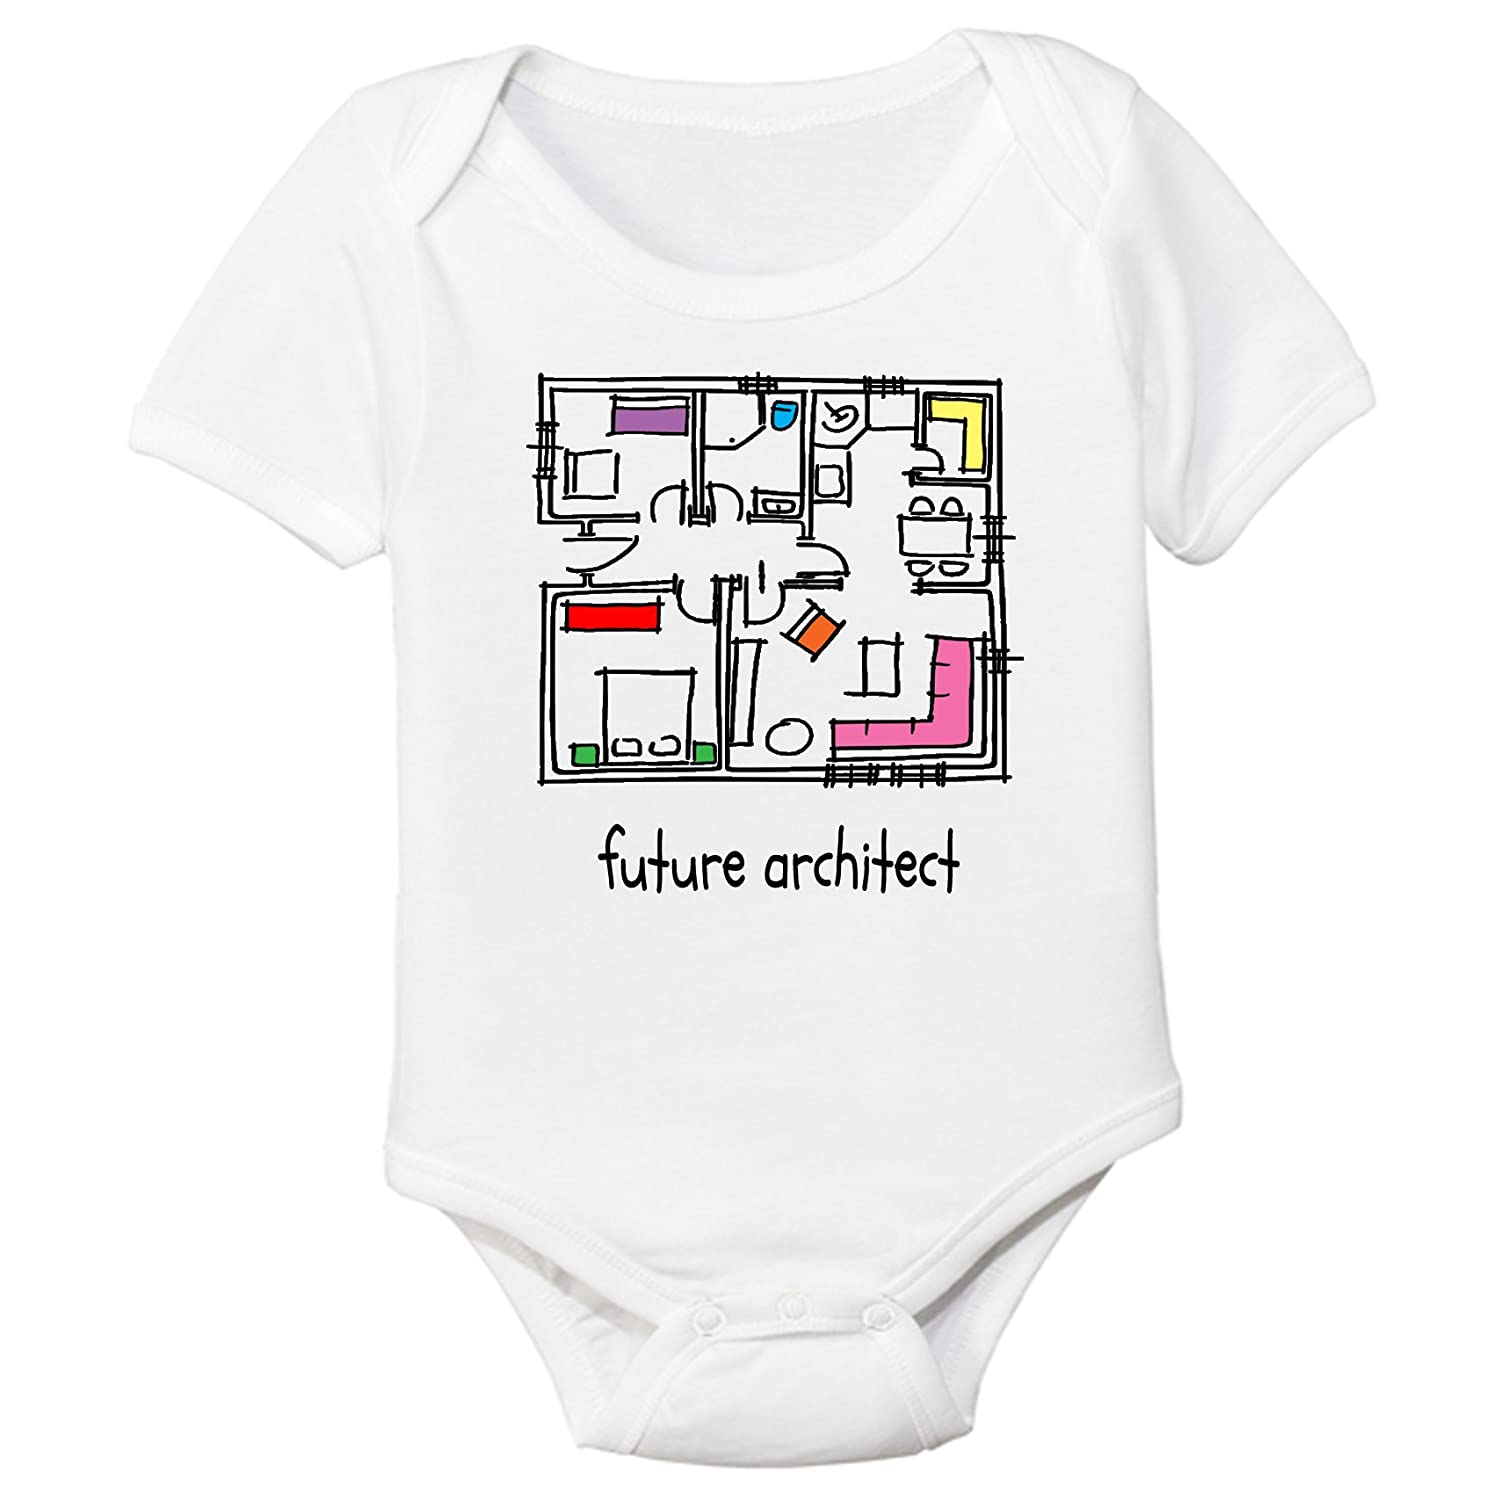 2ae387c92 Amazon.com  The Spunky Stork Future Architect Organic Cotton Baby ...